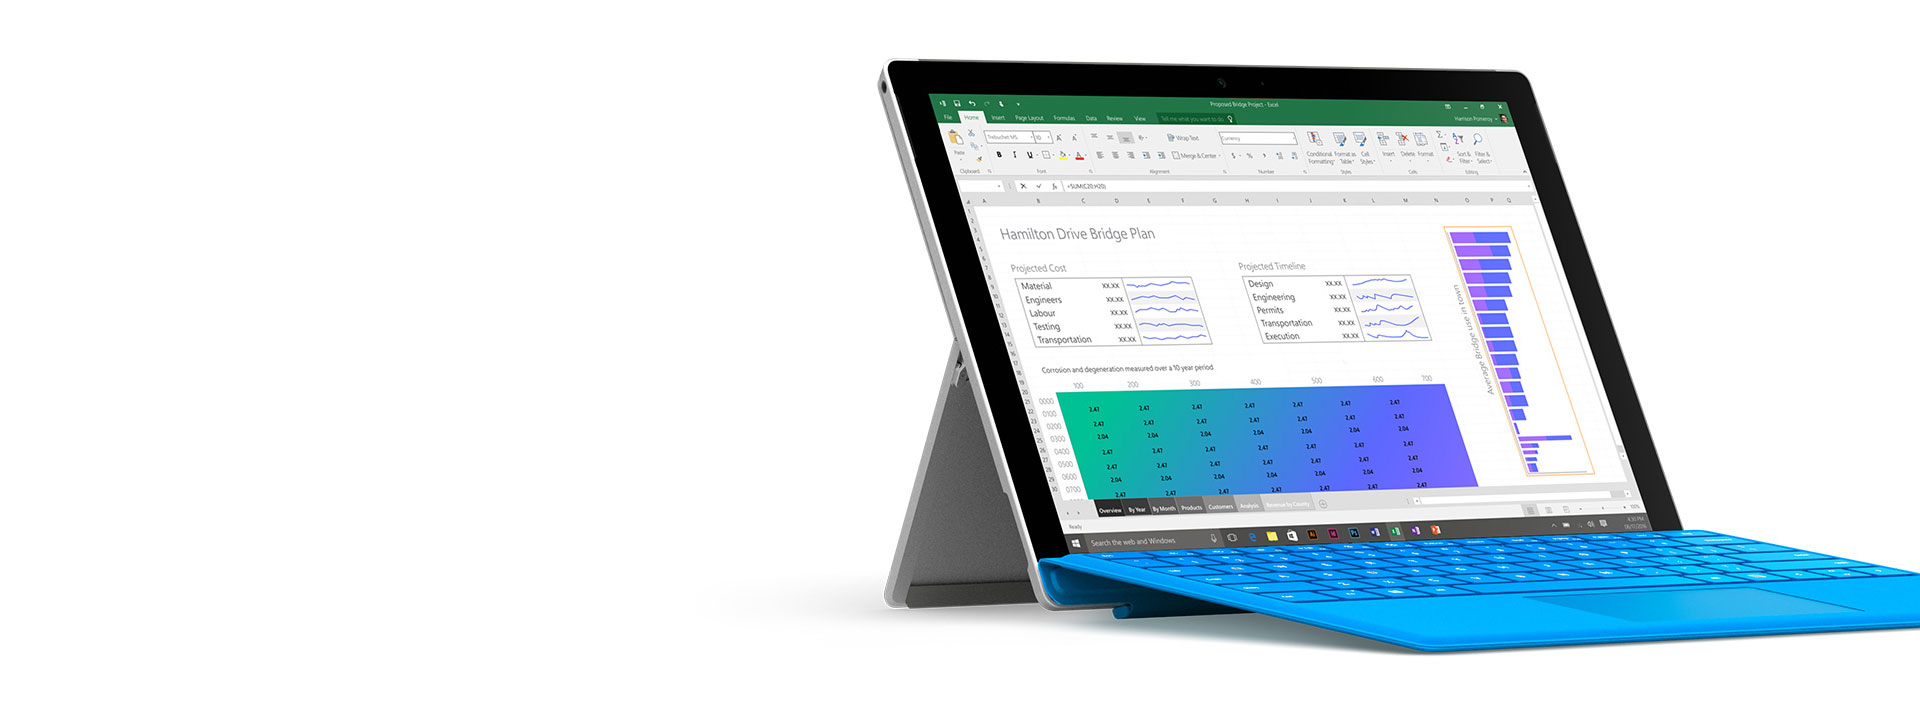 Surface Pro 4 with Excel open on the screen